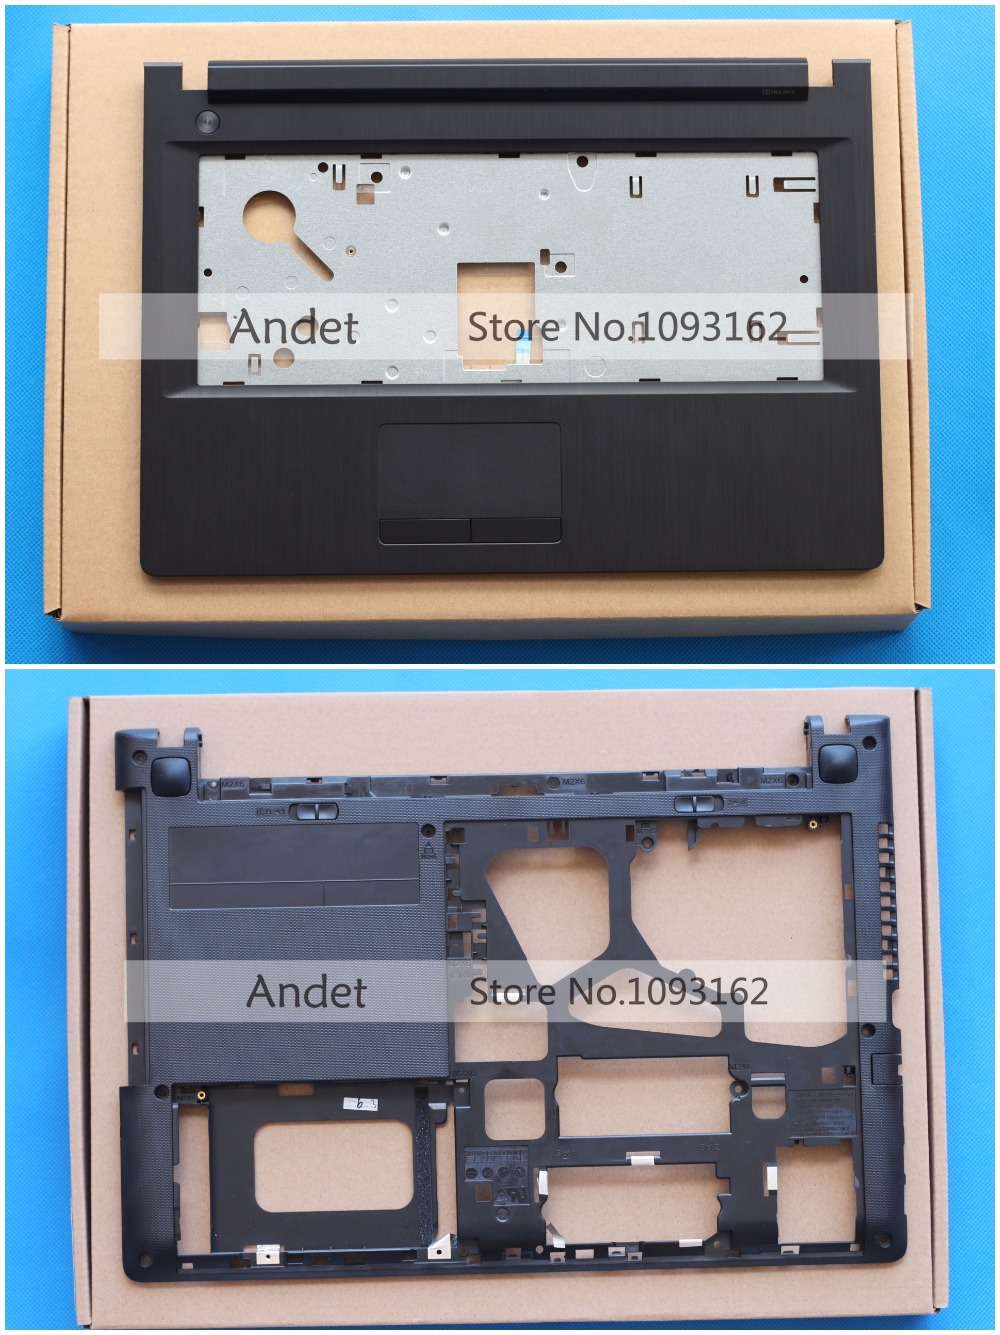 New Pure Color Laptop Sticker Waterproof Personality Skins Lcd Led 140 Inc Lenovo Ideapad G40 30 70 80 Original For 45